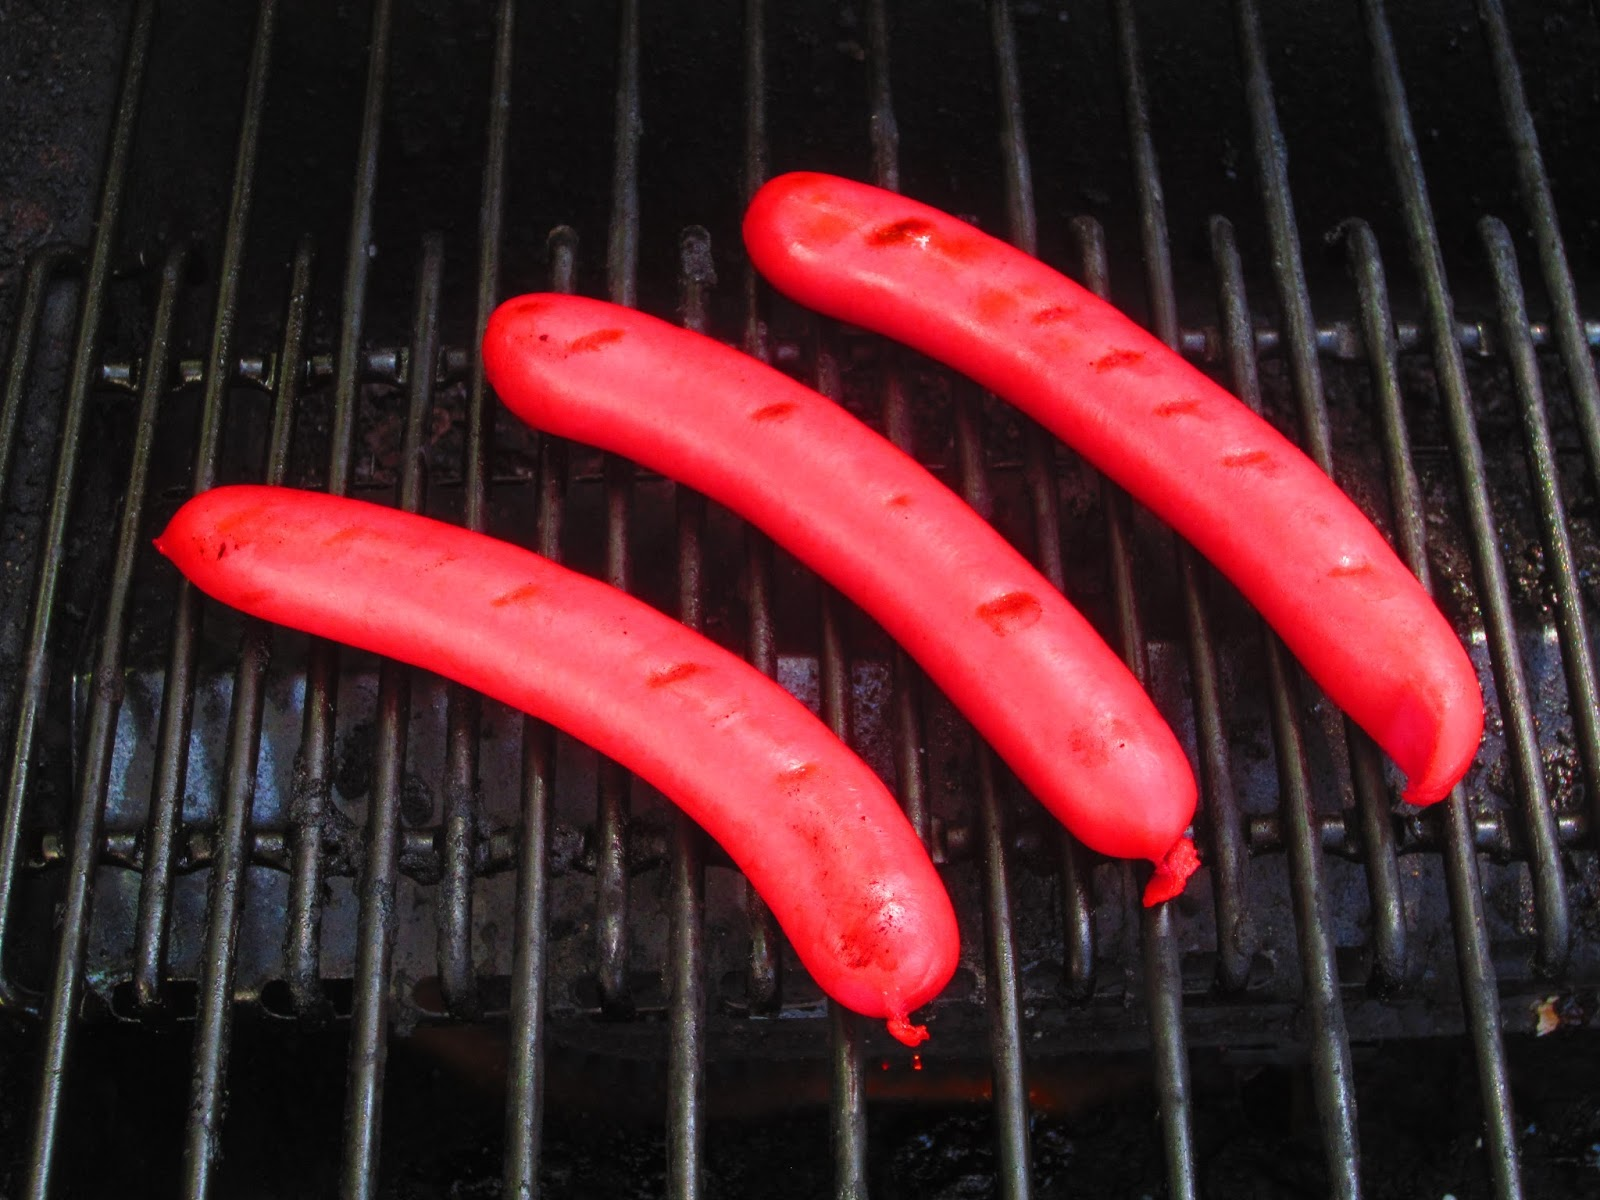 Red Hot Dogs In Maine